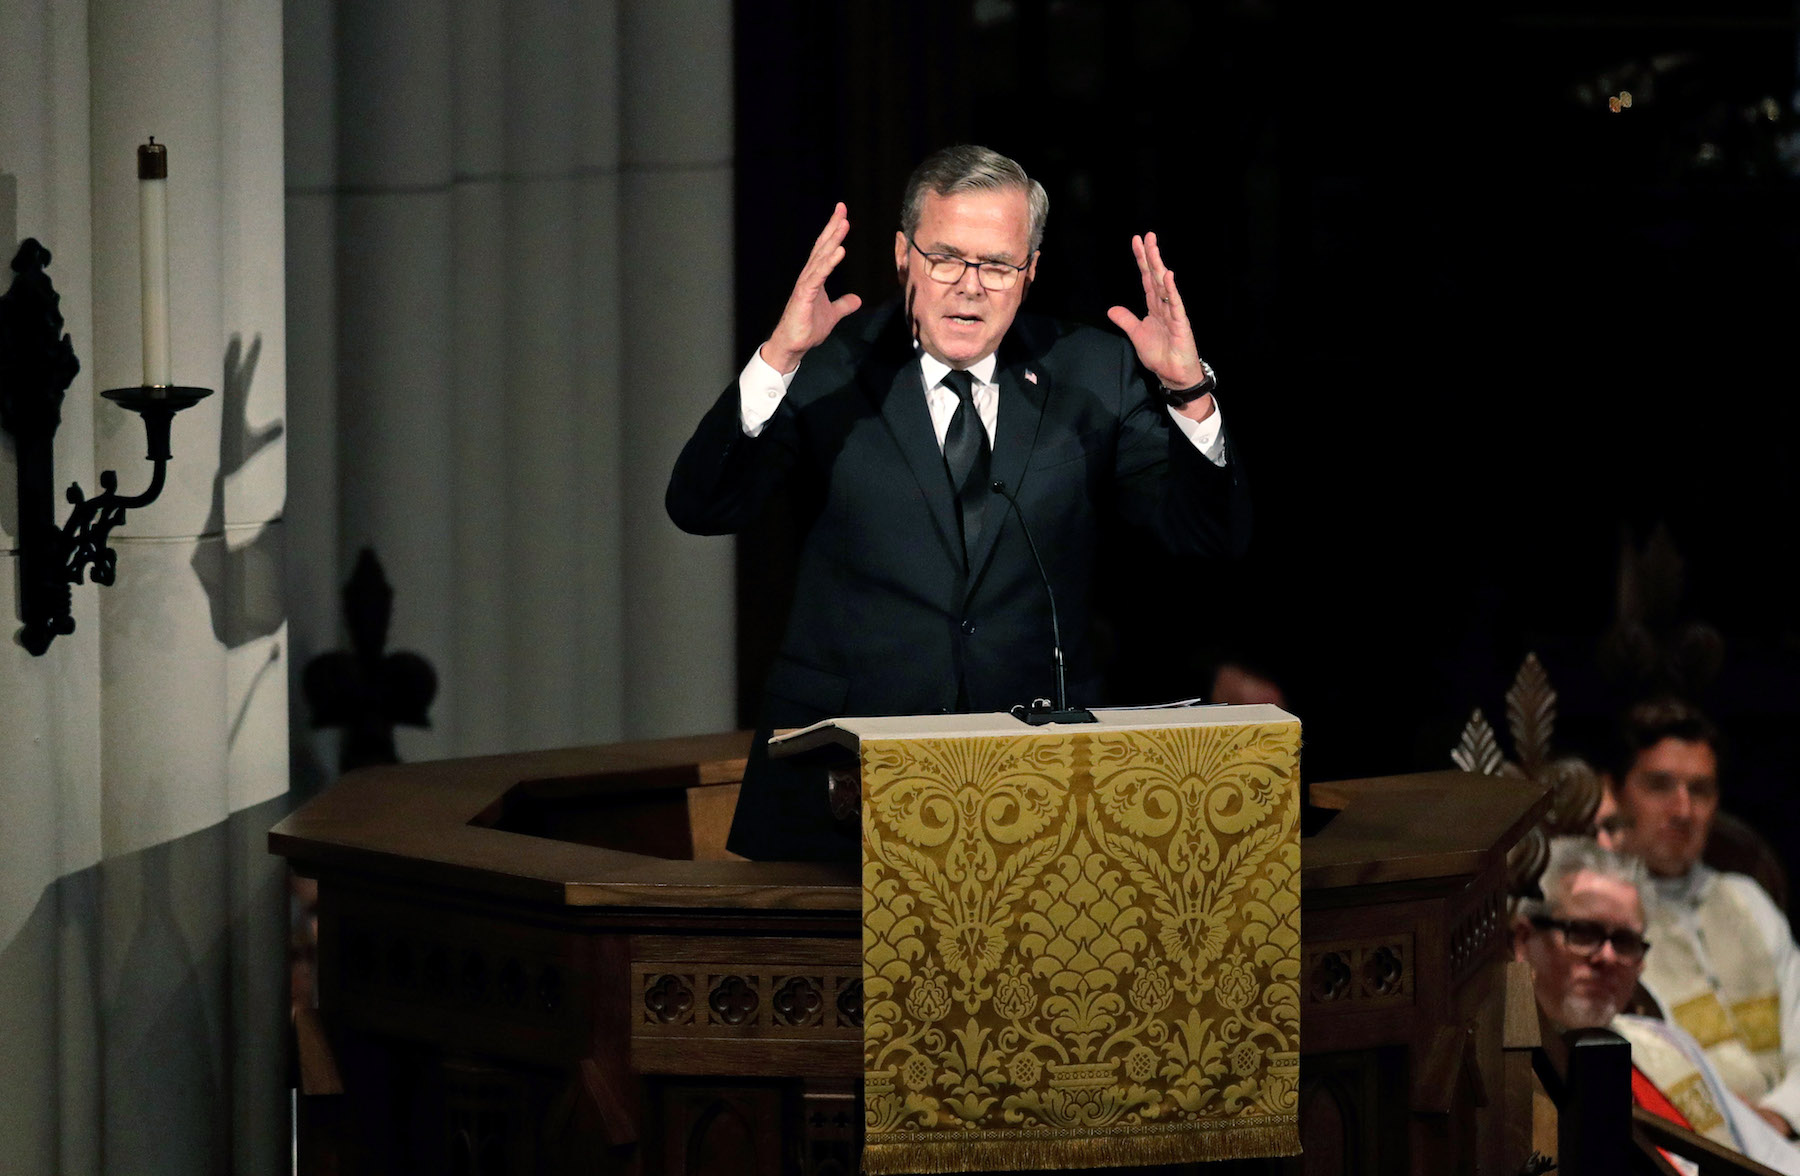 <div class='meta'><div class='origin-logo' data-origin='none'></div><span class='caption-text' data-credit='David J. Phillip-Pool/Getty Images'>Former Florida Governor Jeb Bush speaks during a funeral service for his mother, former first lady Barbara Bush at St. Martin's Episcopal Church.</span></div>